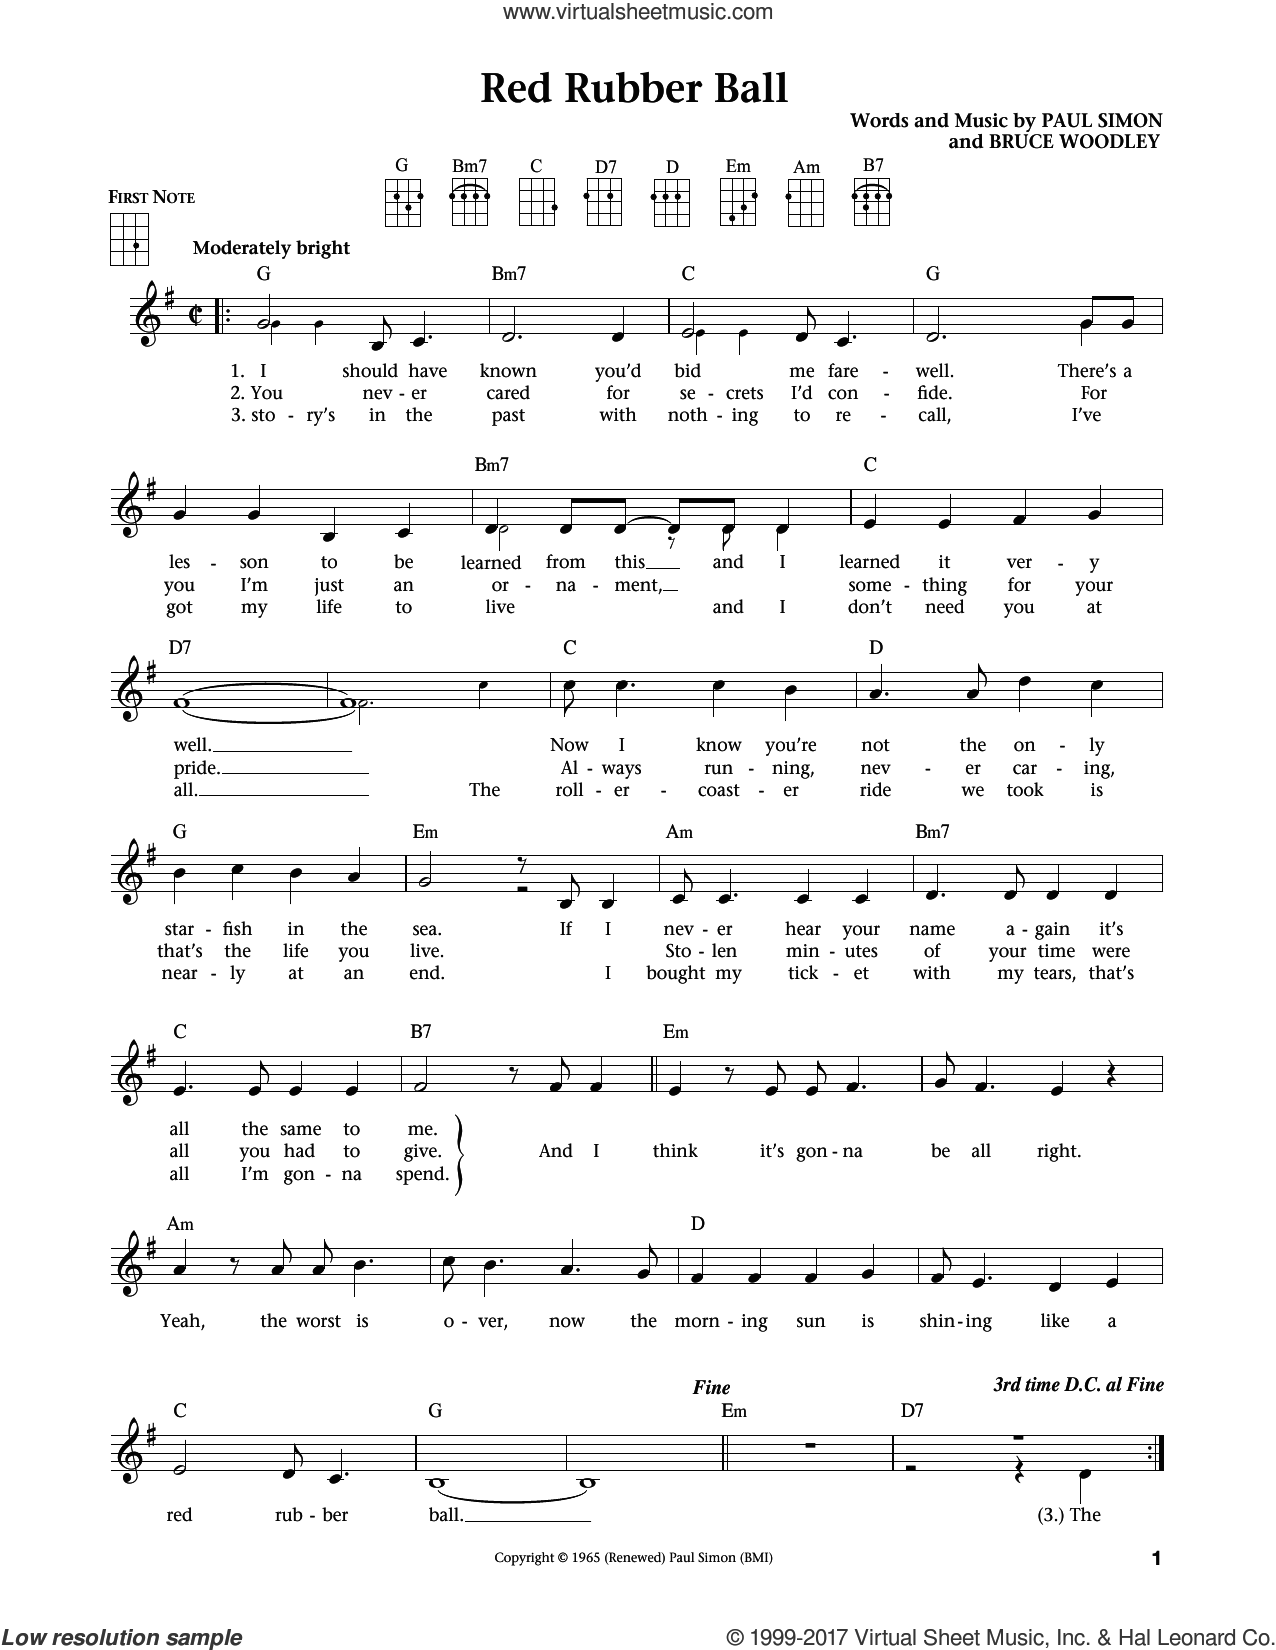 Red Rubber Ball (from The Daily Ukulele) (arr. Liz and Jim Beloff) sheet music for ukulele by The Cyrkle, Jim Beloff, Liz Beloff, Simon & Garfunkel, Bruce Woodley and Paul Simon, intermediate skill level